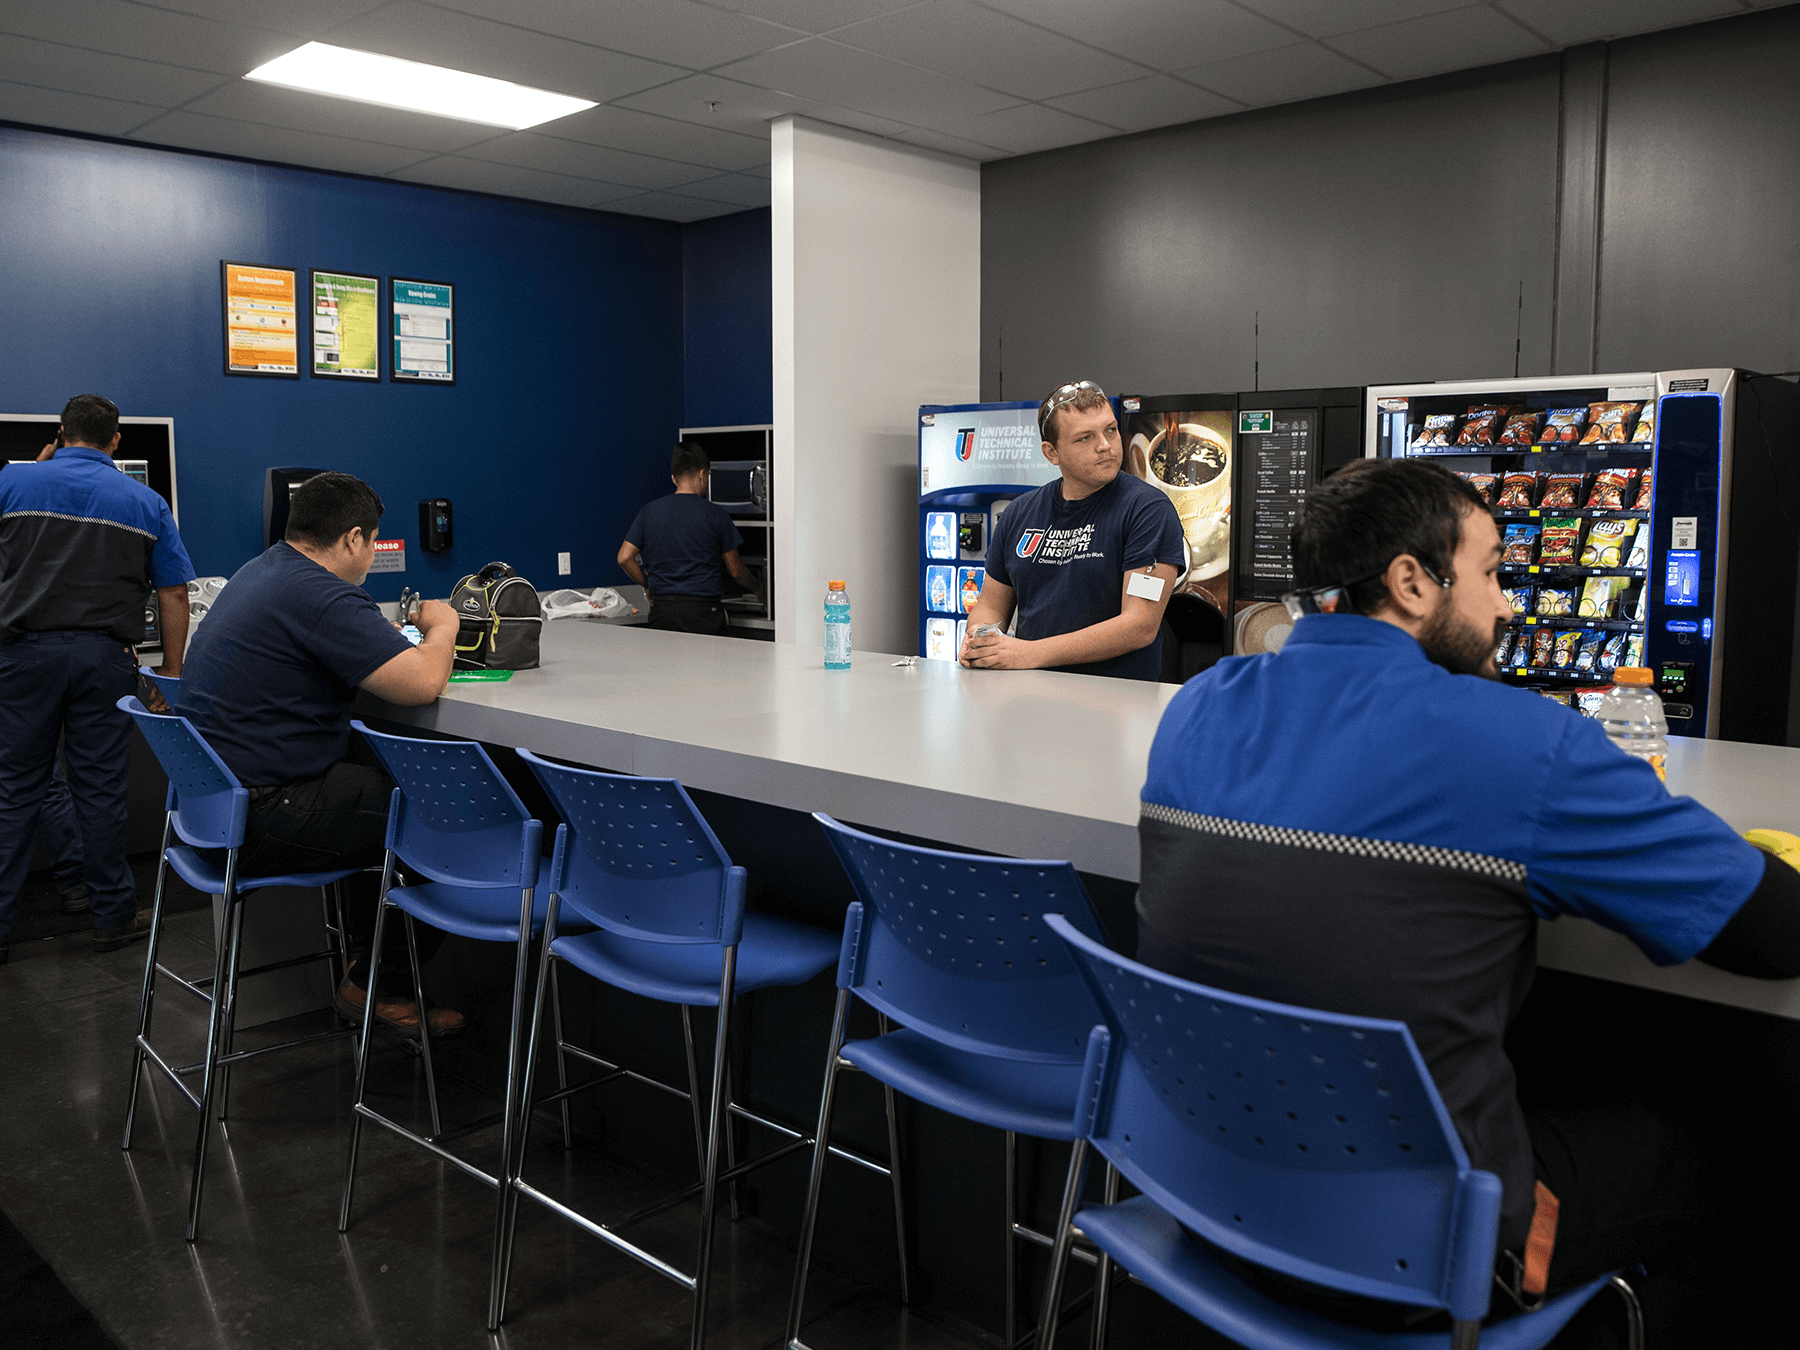 Students in the Break-Room at Long Beach campus